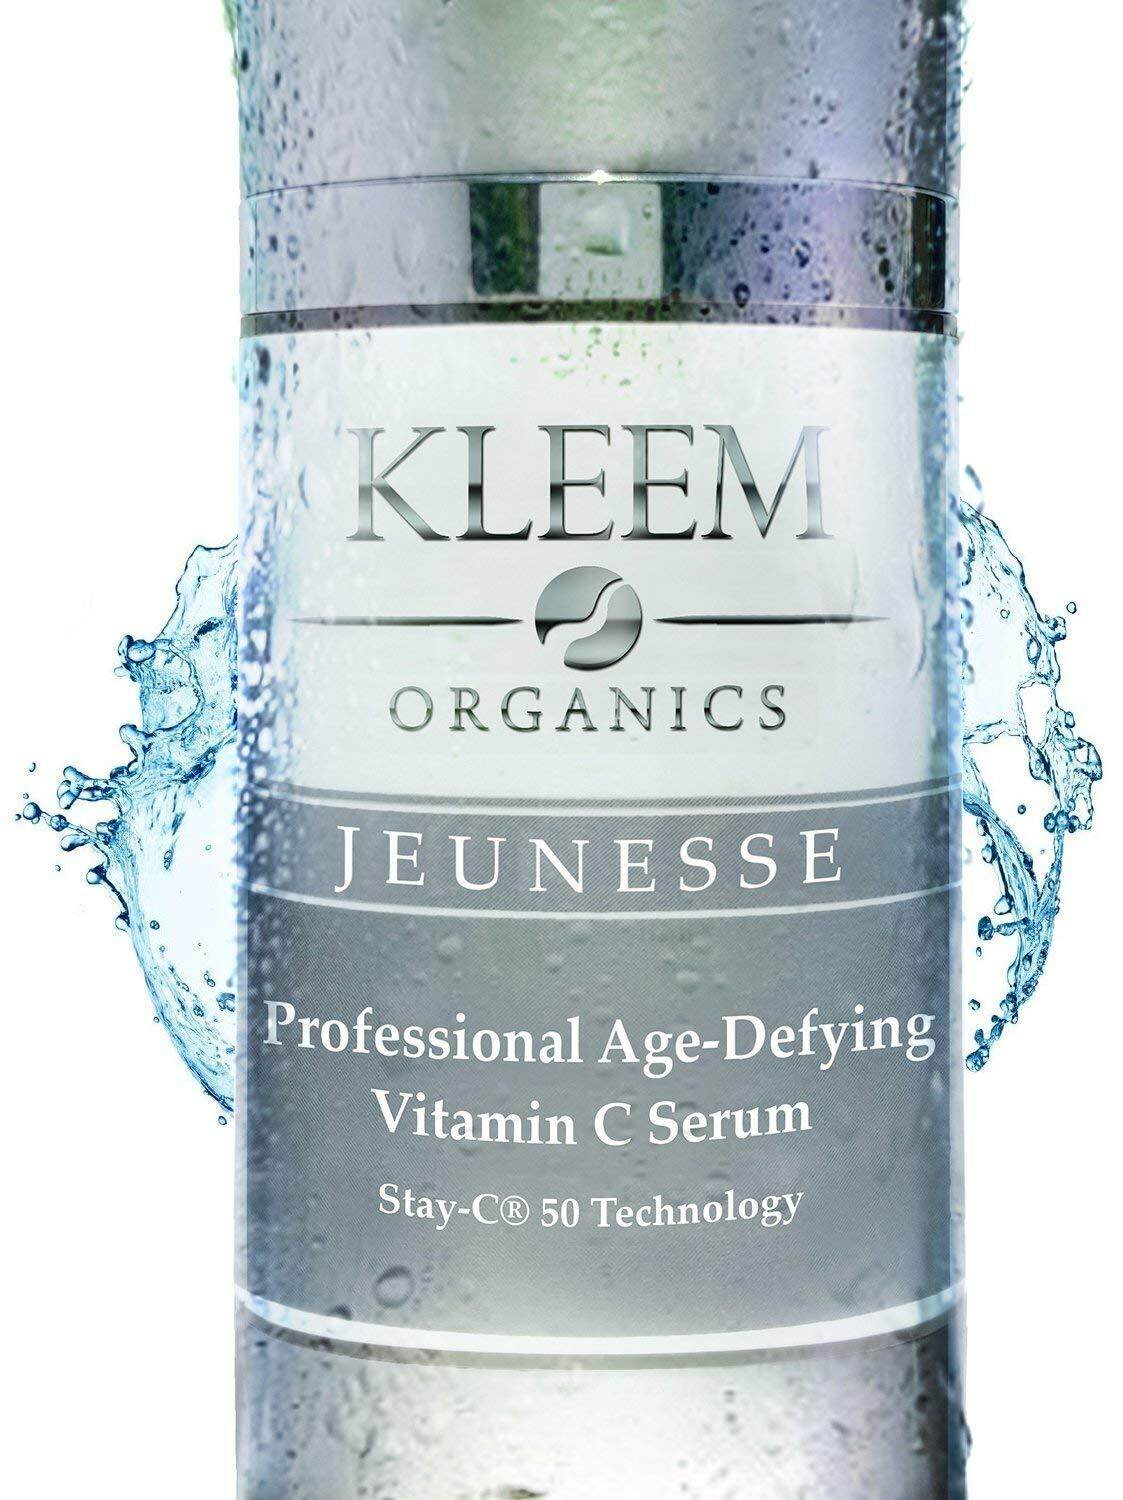 Kleem ORGANIC Vitamin C Serum for Face, Neck & Décolleté for Anti Aging, Age Spots, Acne & Neck Firming - BEST Anti Wrinkle Facial Treatment Serum with Natural Ingredients to Restore & Boost Collagen - 1 oz